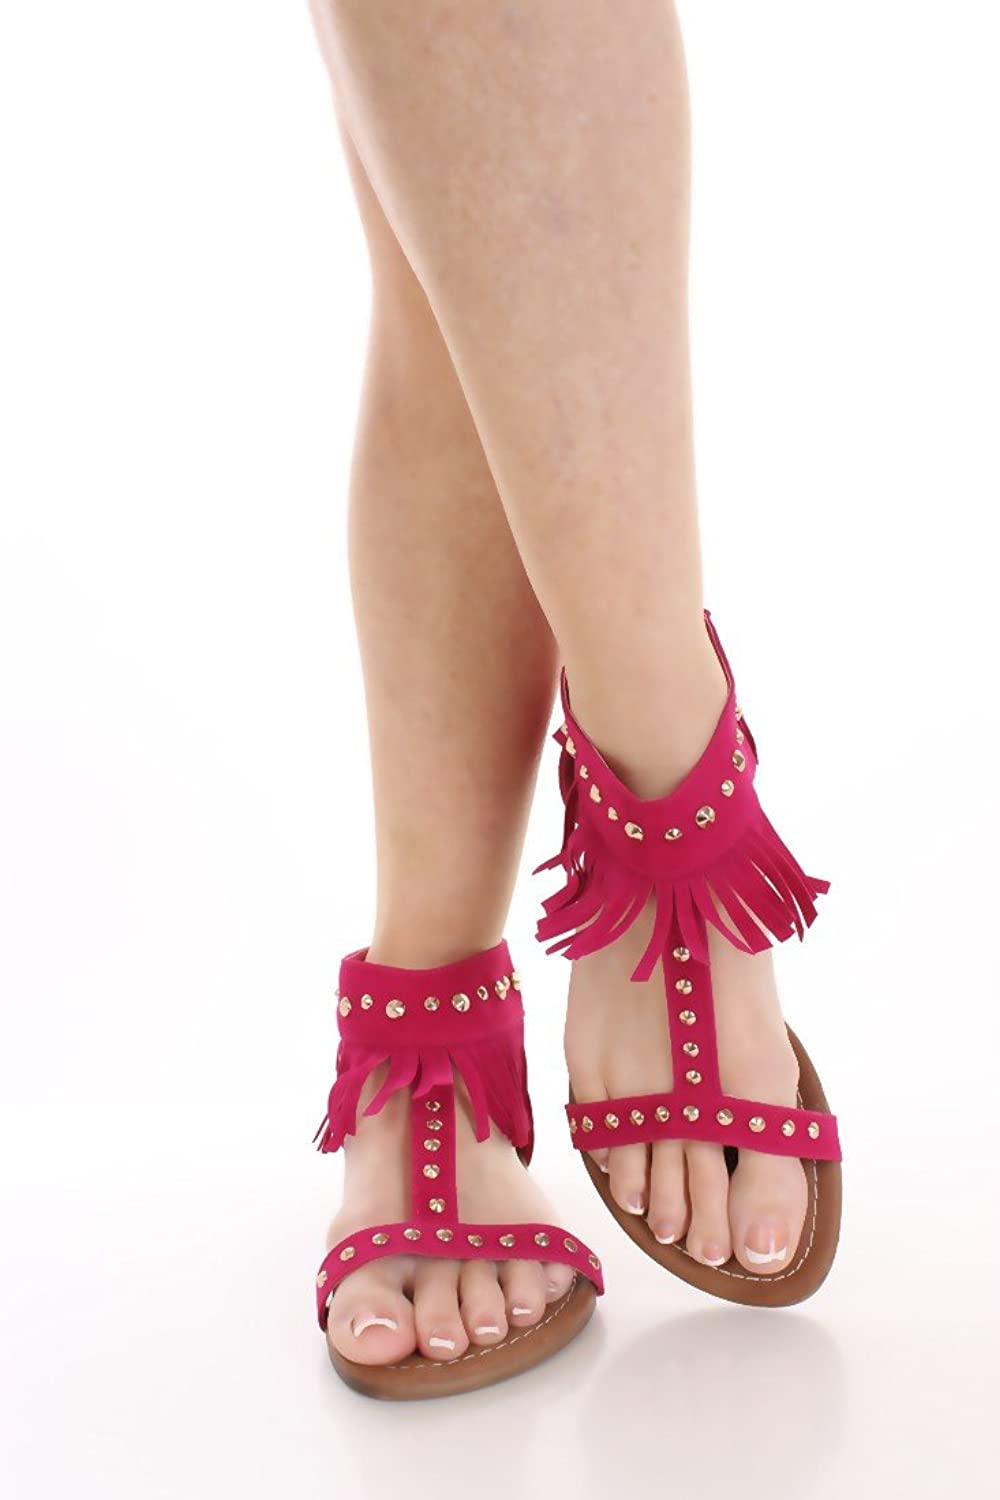 New Womens Studded Fringe Dress Sandals in Black, Camel, Brown, Fuchsia, bluee